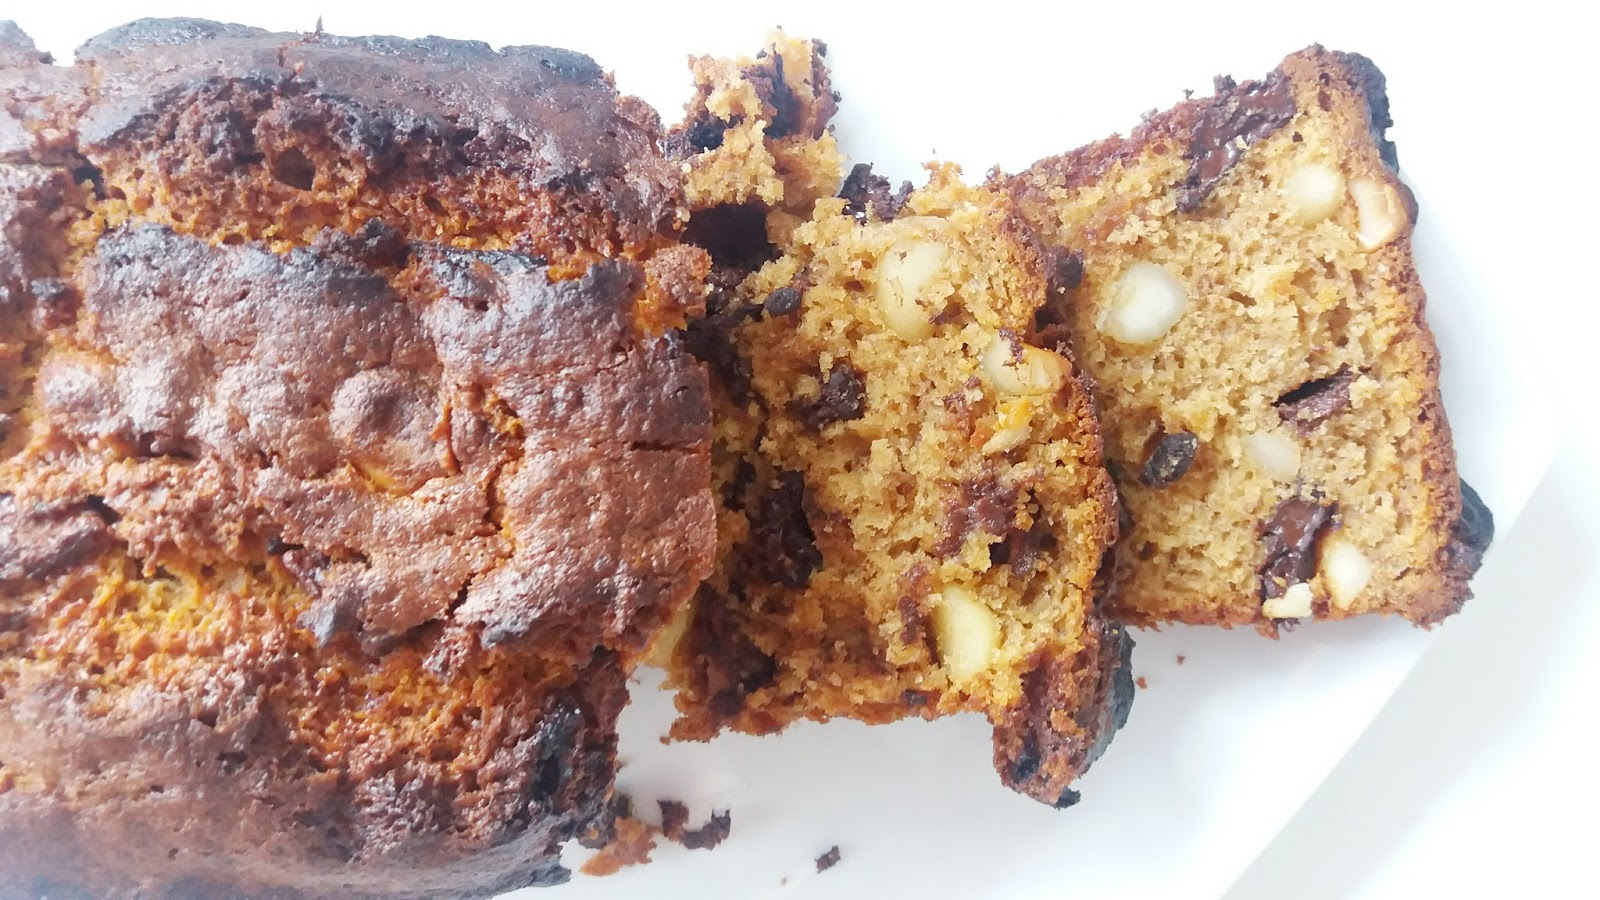 Chocolate and Macadamia Banana Bread